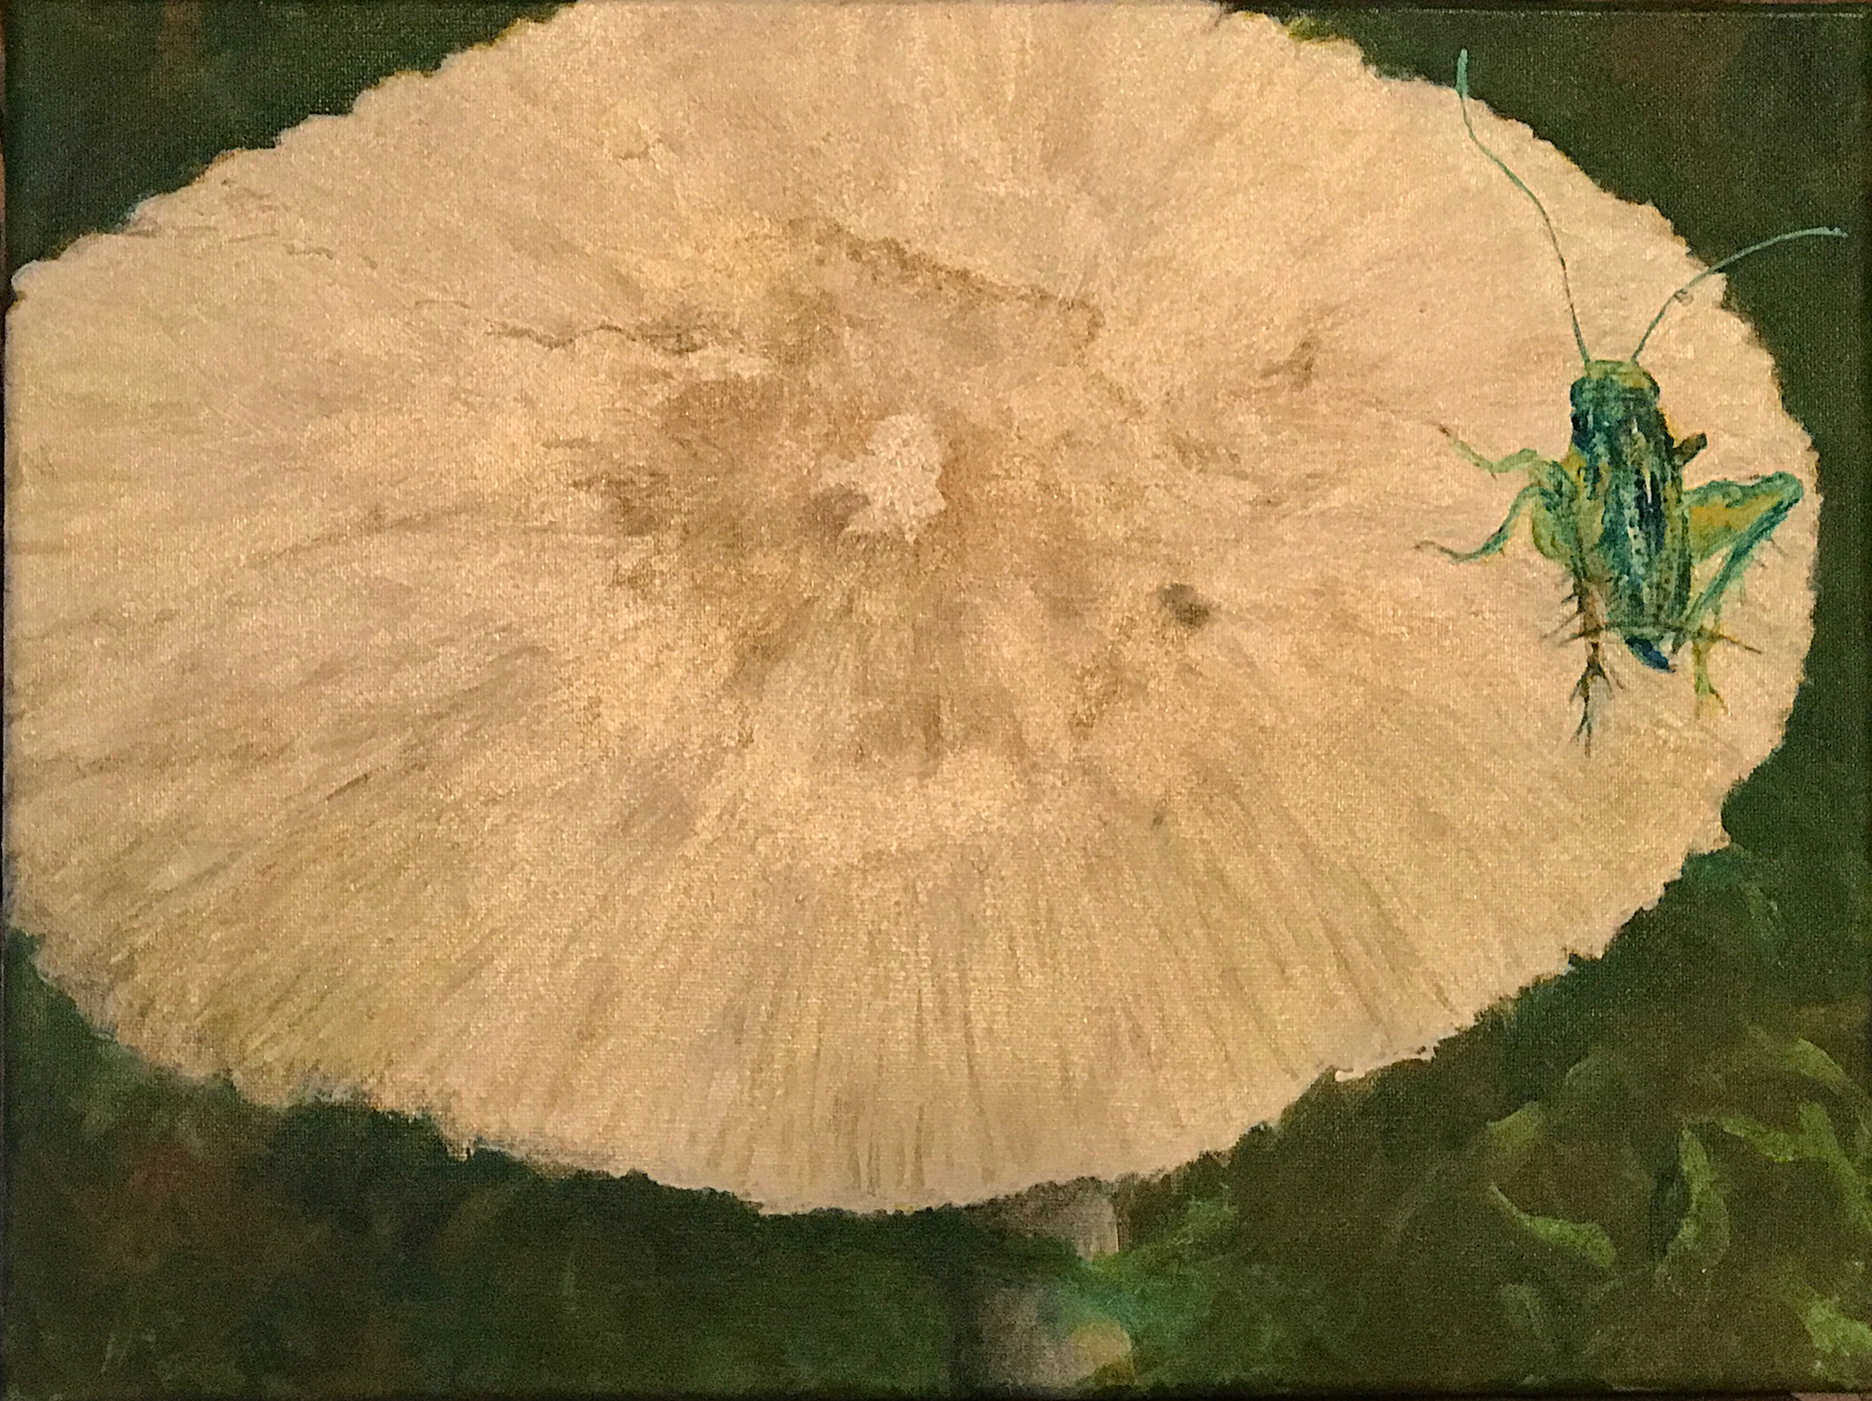 Insect, grasshopper, on a mushroom or fungi